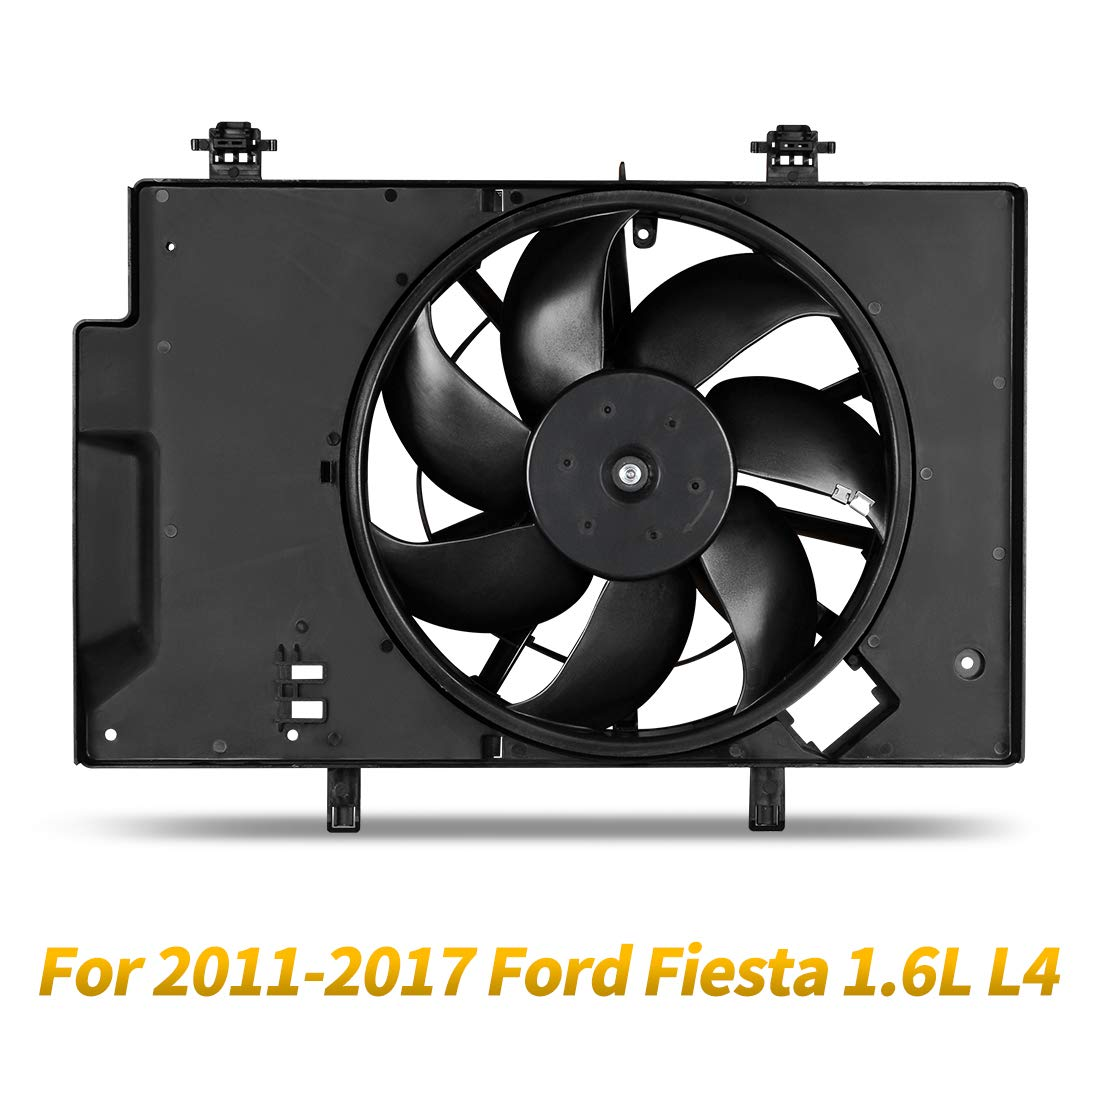 Radiator Condenser Cooling Fan Assembly For 2011-2017 Ford Fiesta 1.6L L4